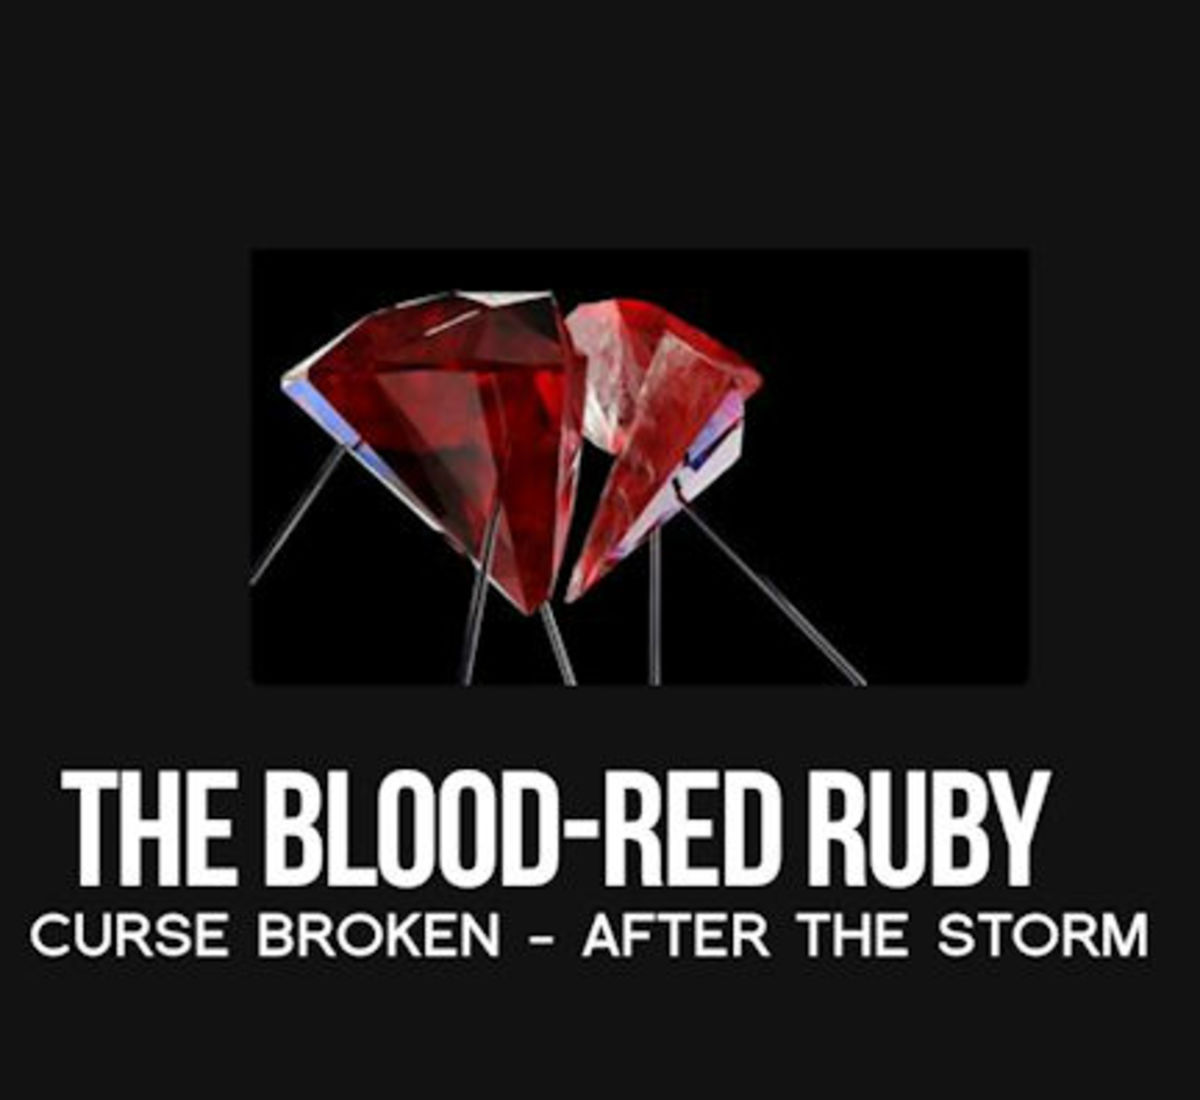 The Blood-Red Ruby: After the Storm 15